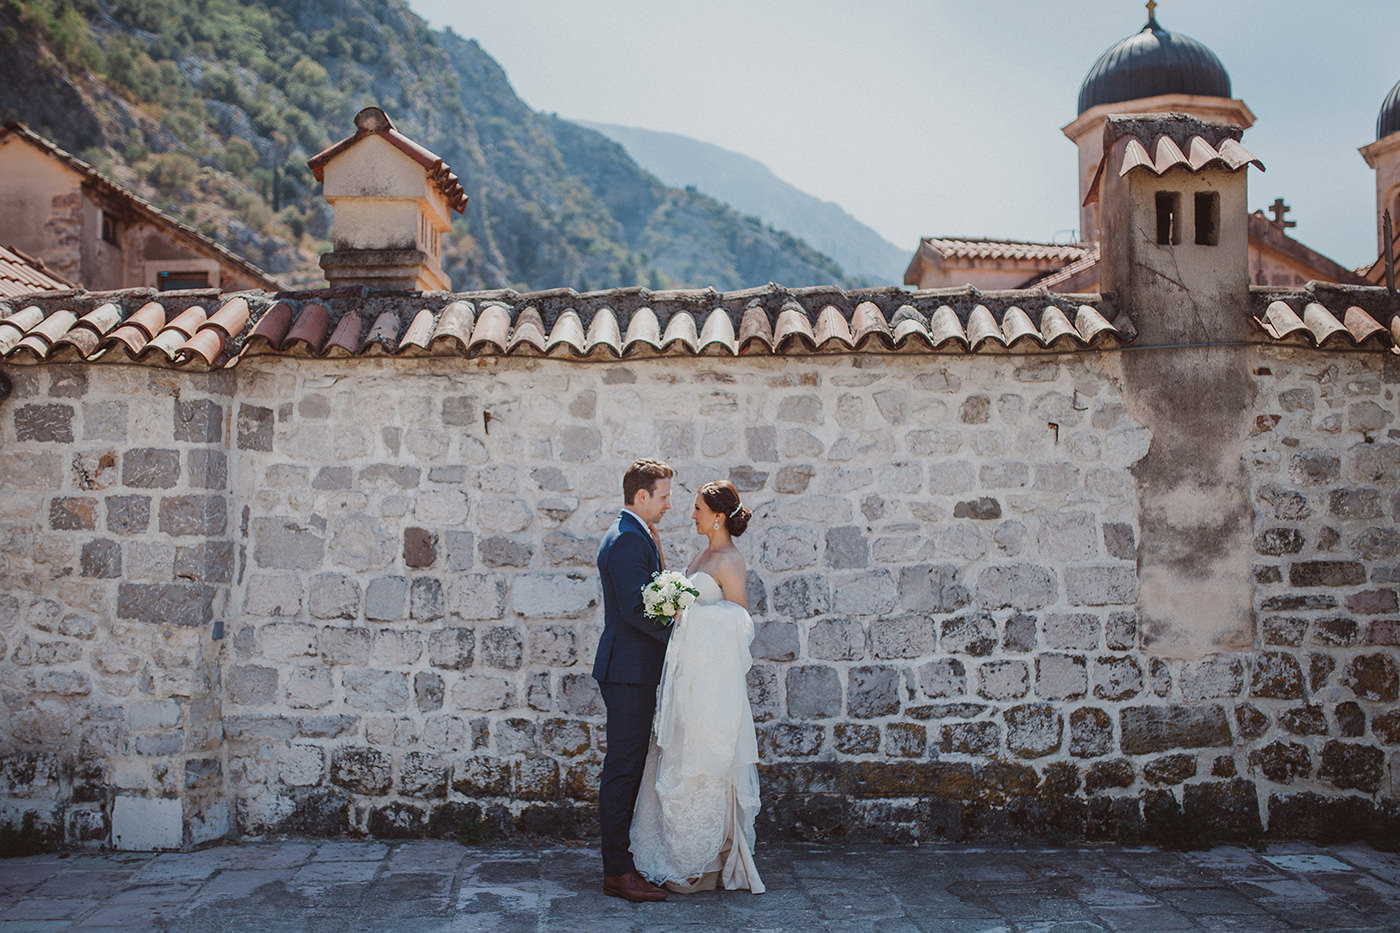 irena-ryan-destination-wedding-photographer-montenegro-kotor-0070